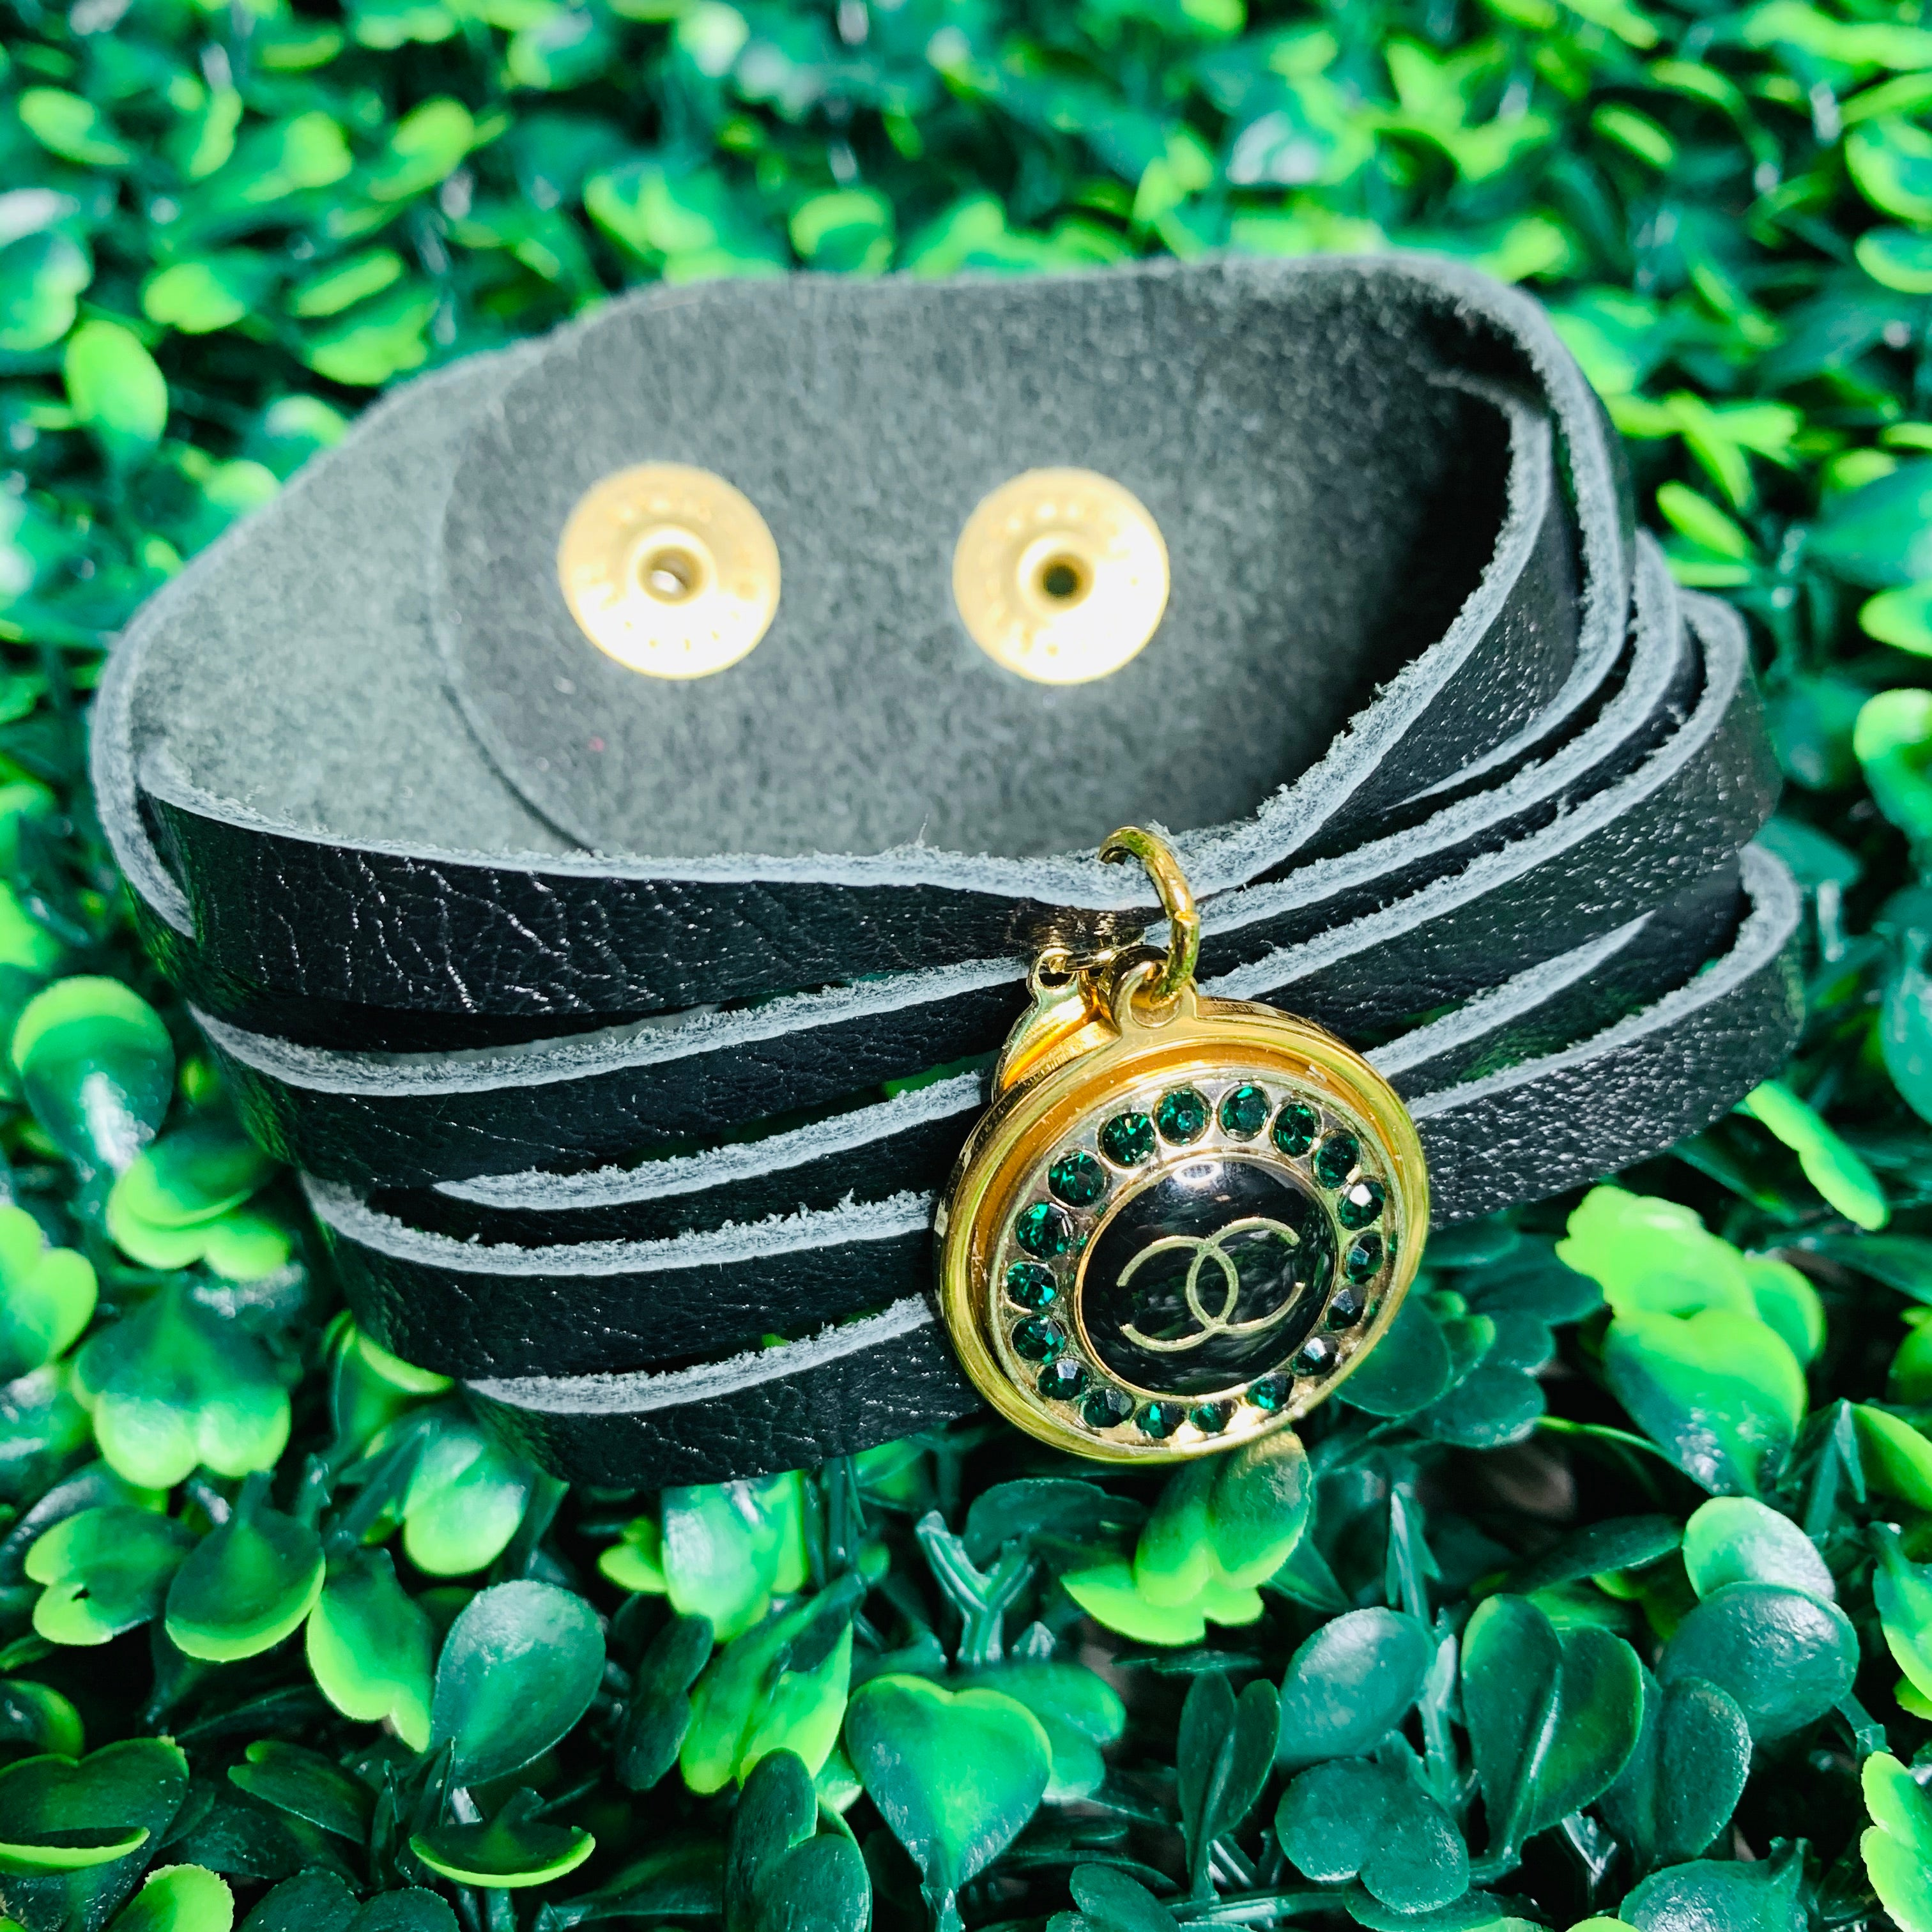 Charcoal Leather Cuff Bracelet With Vintage Chanel Button